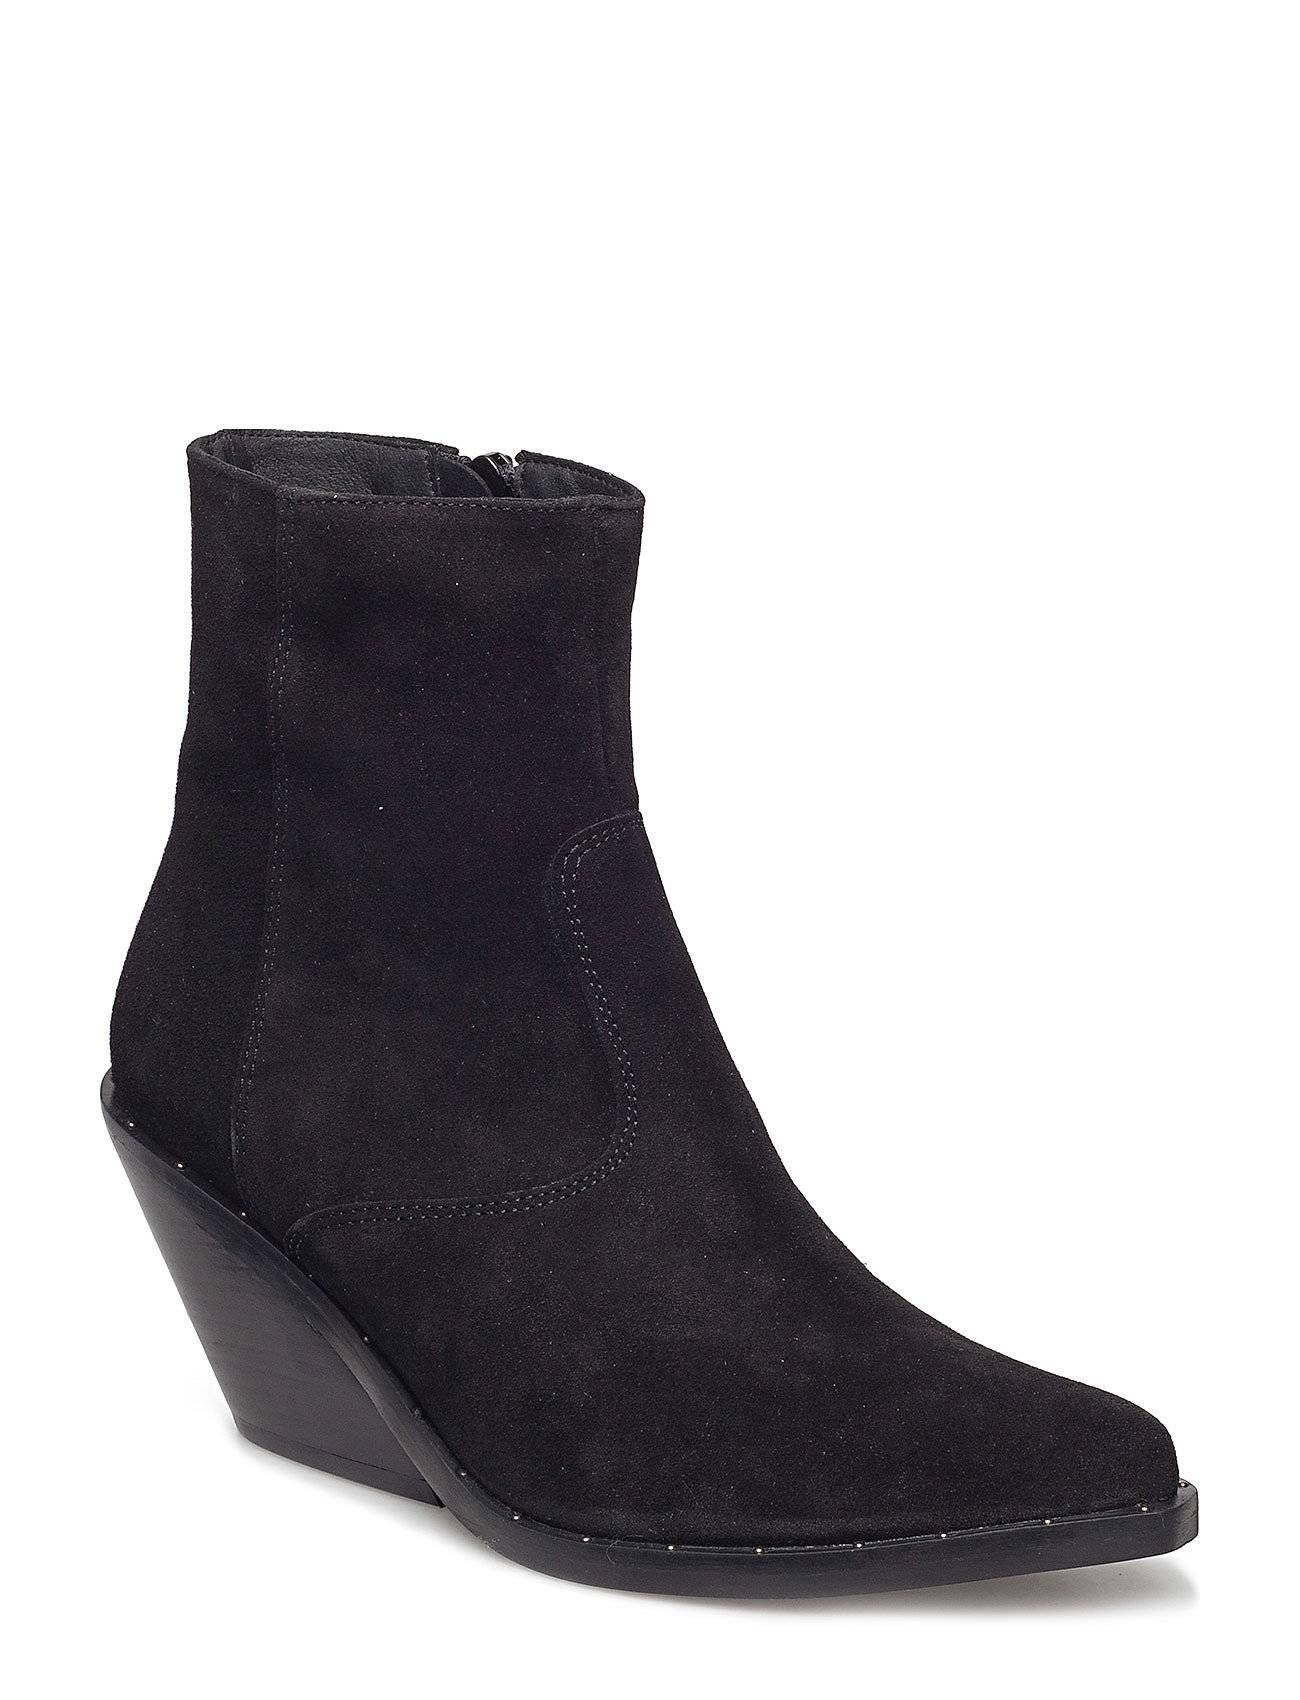 Henry Kole Evie Black Suede Shoes Boots Ankle Boots Ankle Boots With Heel Musta Henry Kole